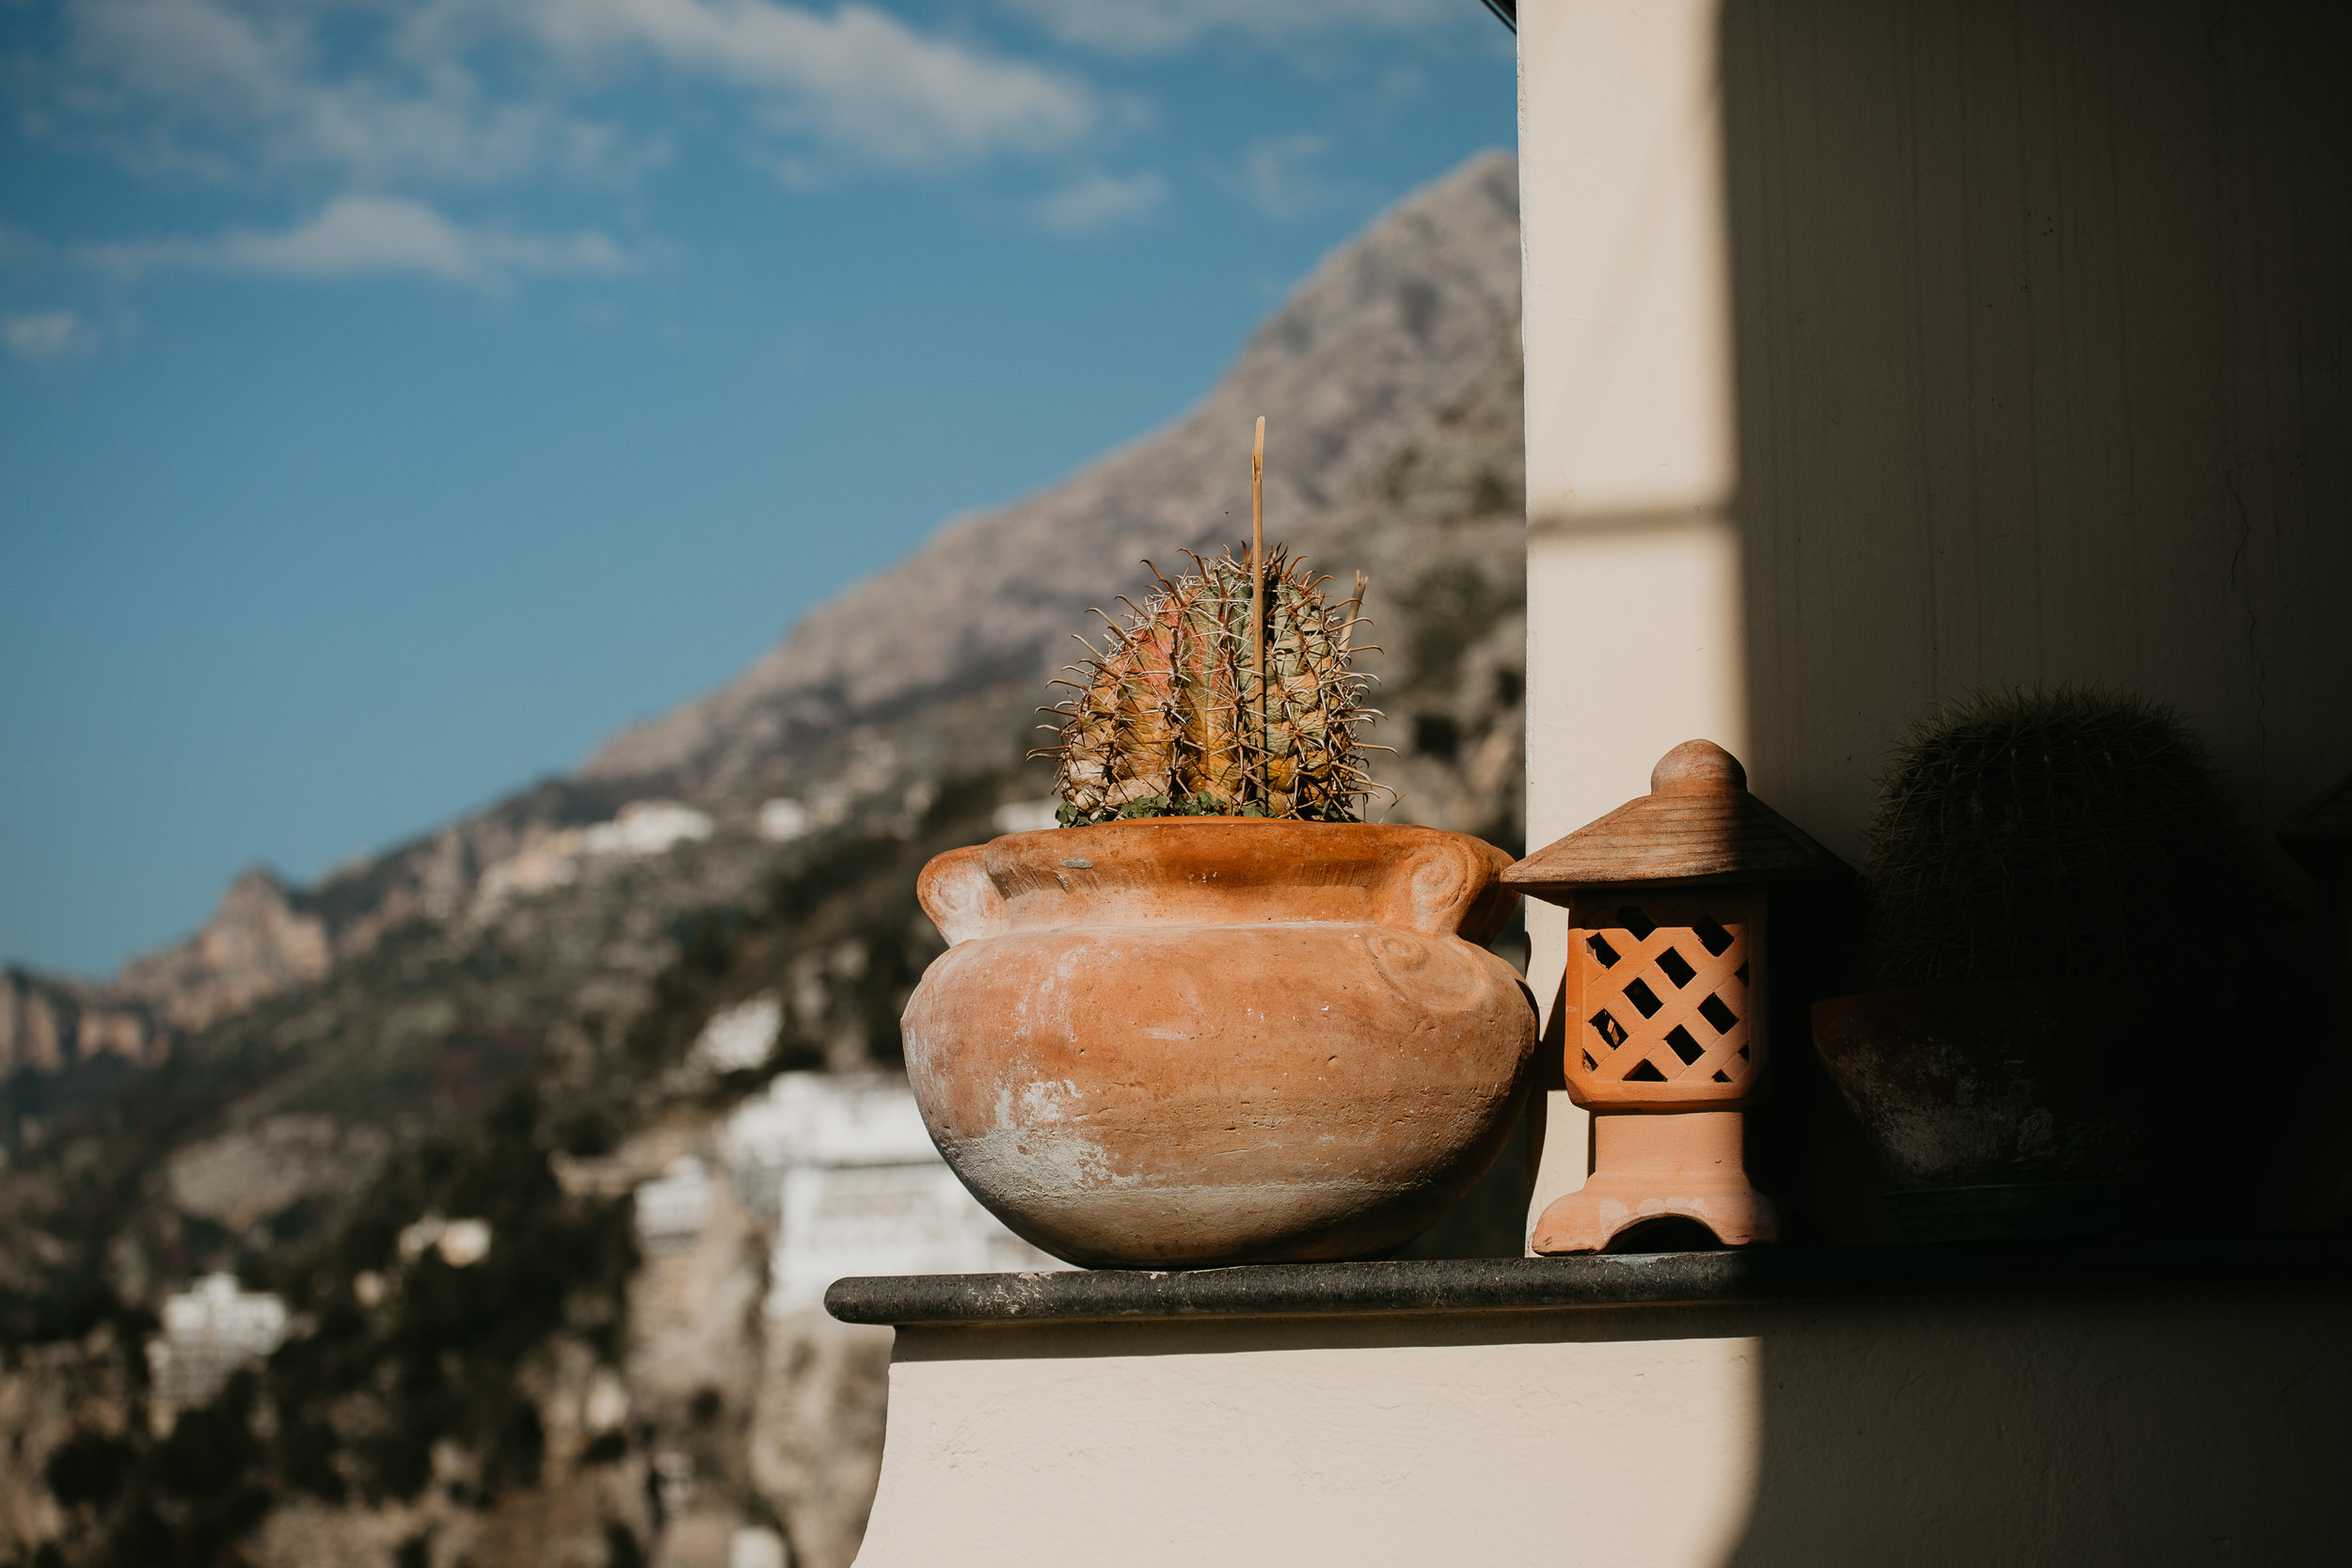 nicole-daacke-photography-destination-elopement-wedding-in-italy-florence-elopement-amalfi-coast-elopement-photographer-positano-photographer-rome-destination-wedding-photographer-italy-italian-landscapes-italy-adventure-itinerary -0278.jpg